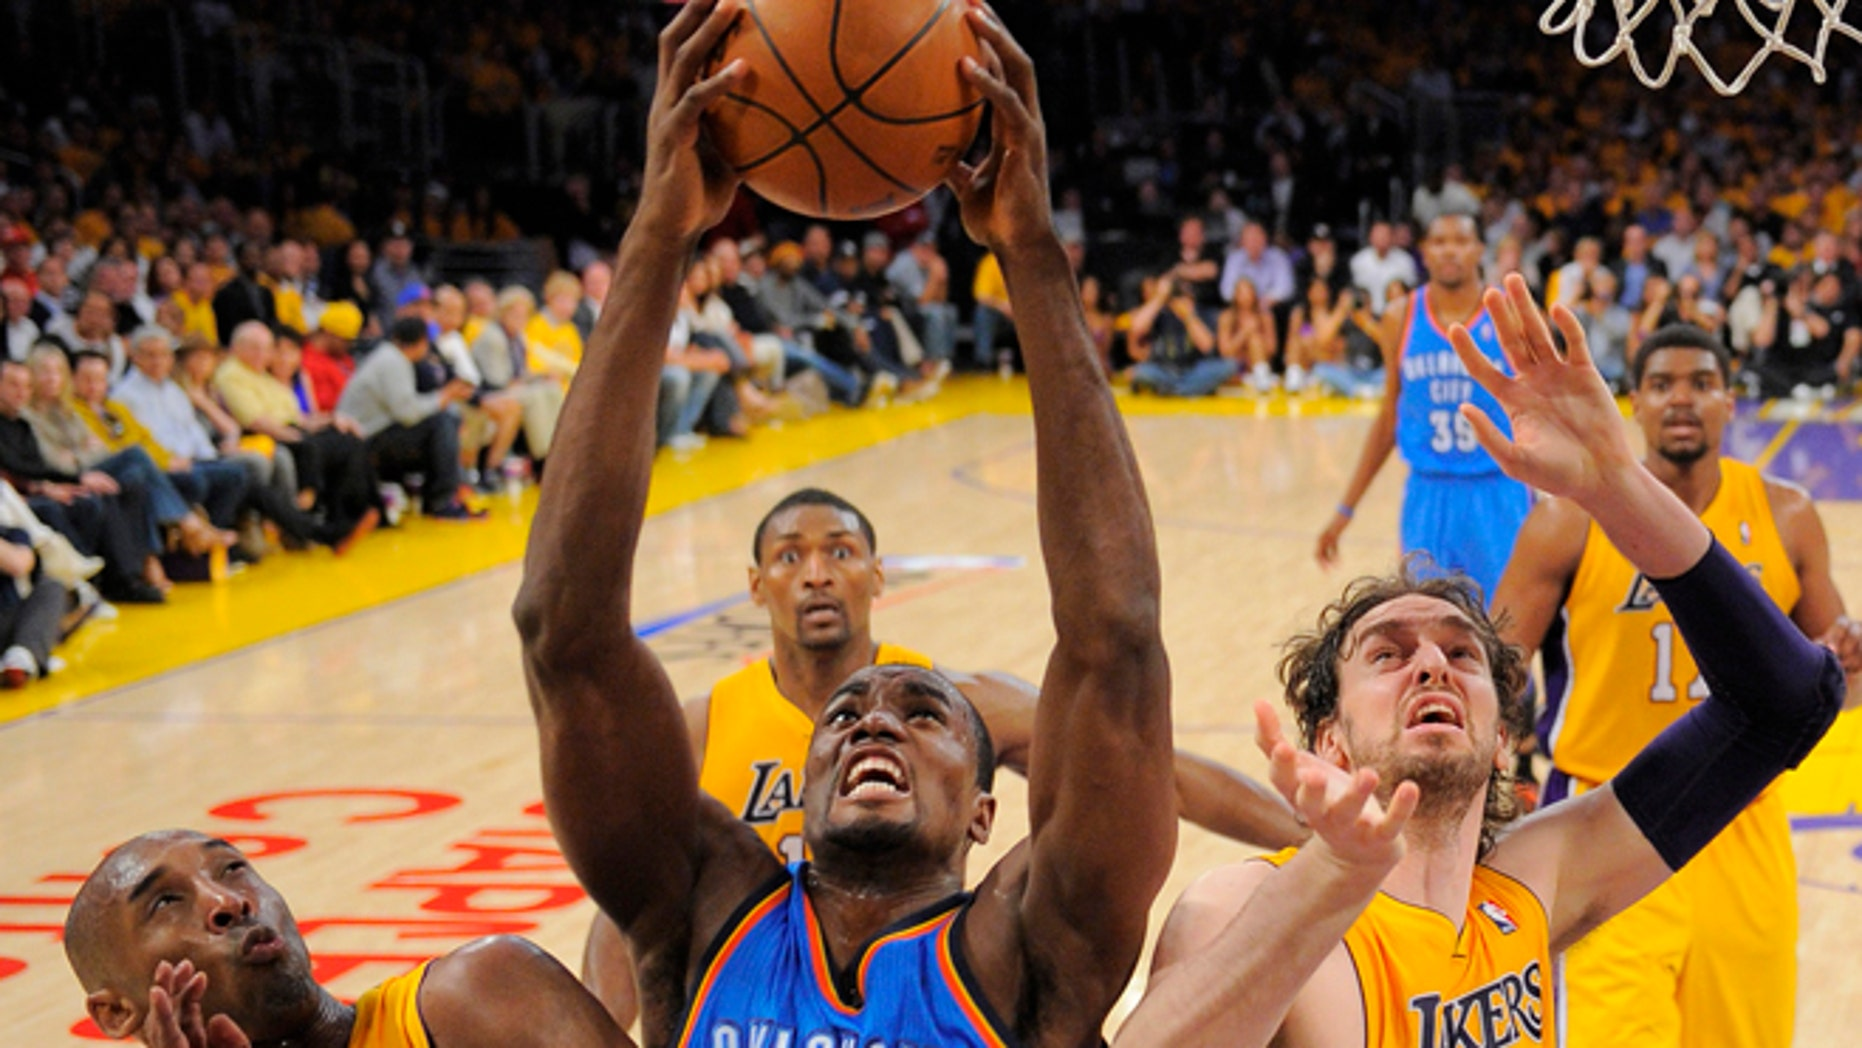 Oklahoma City Thunder forward Serge Ibaka of Congo, center, grabs a rebound as Los Angeles Lakers guard Kobe Bryant, left, and forward Pau Gasol of Spain look on during the first half in Game 3 of an NBA basketball playoffs Western Conference semifinal, Friday, May 18, 2012, in Los Angeles.  (AP Photo/Mark J. Terrill)